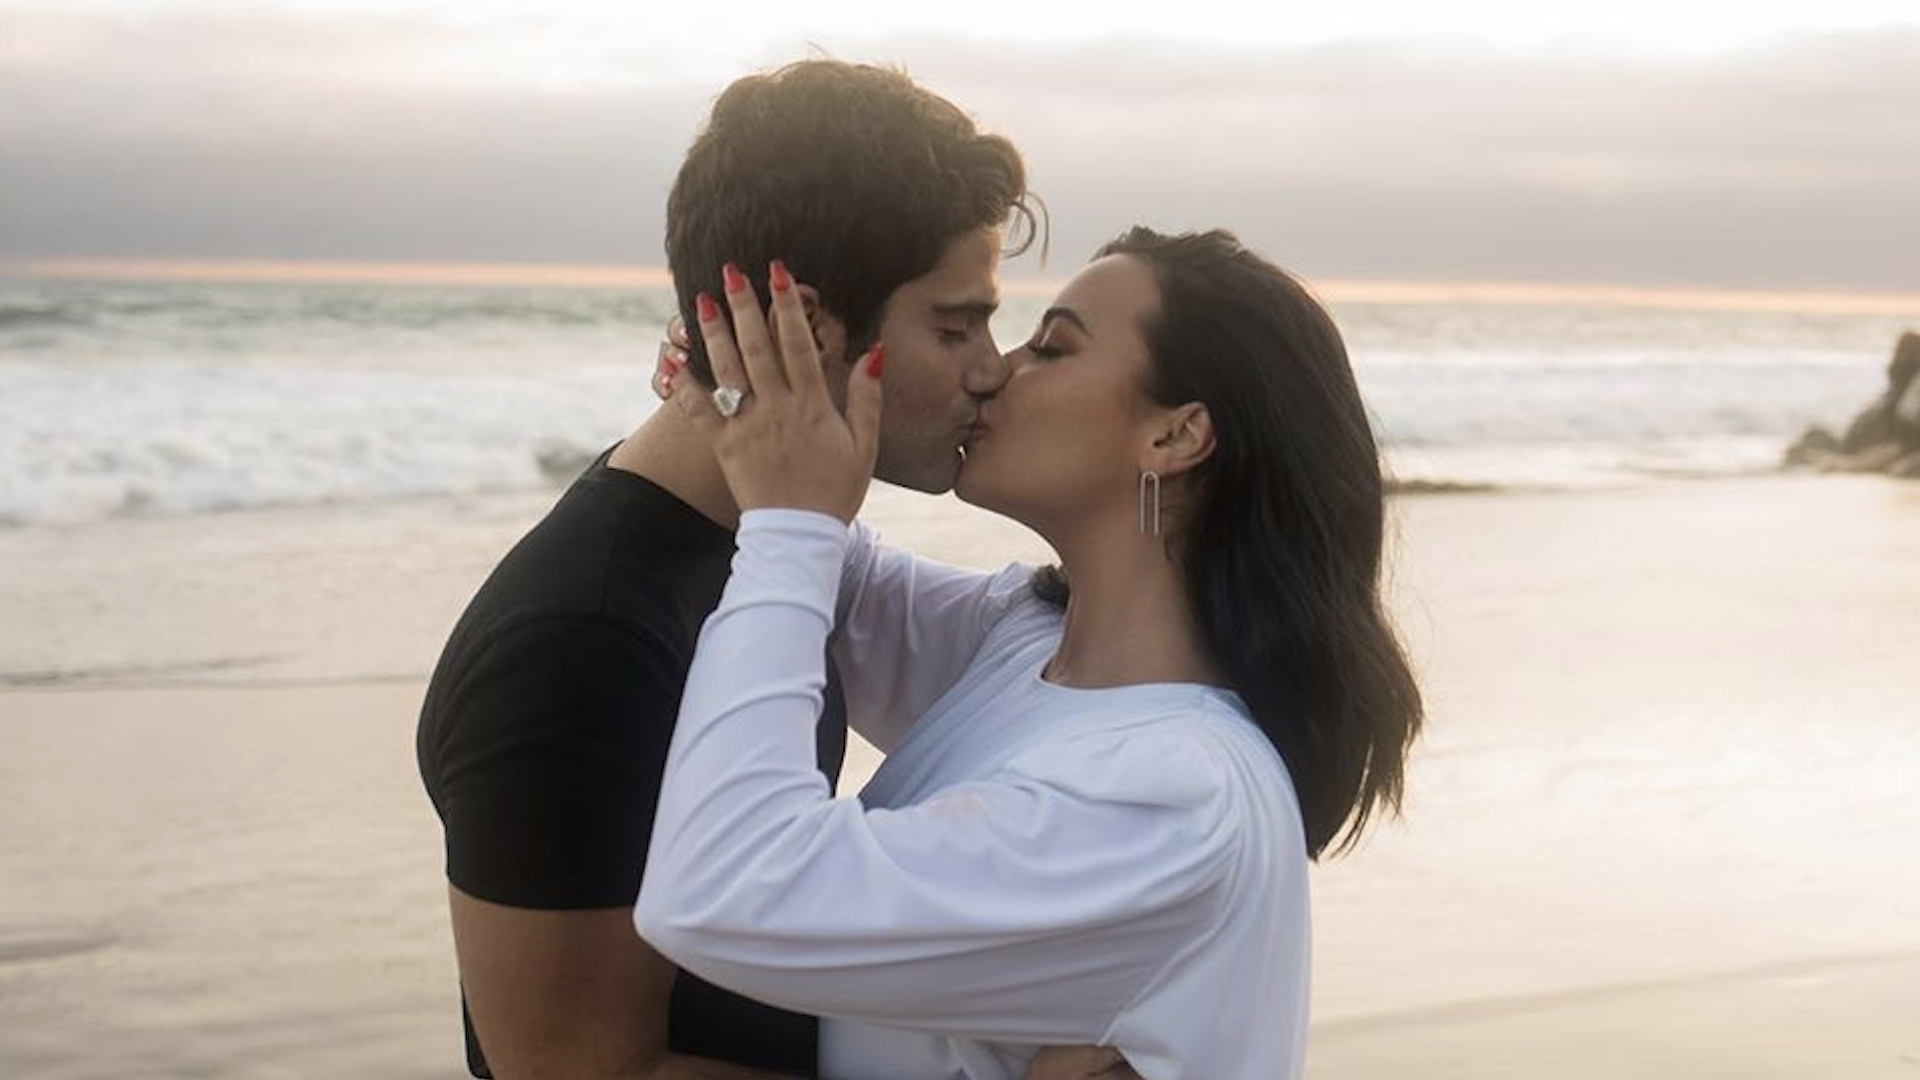 Demi Lovato, Max Ehrich Wedding Rumors- Singer is Ready to Tie the Knot after Engagement